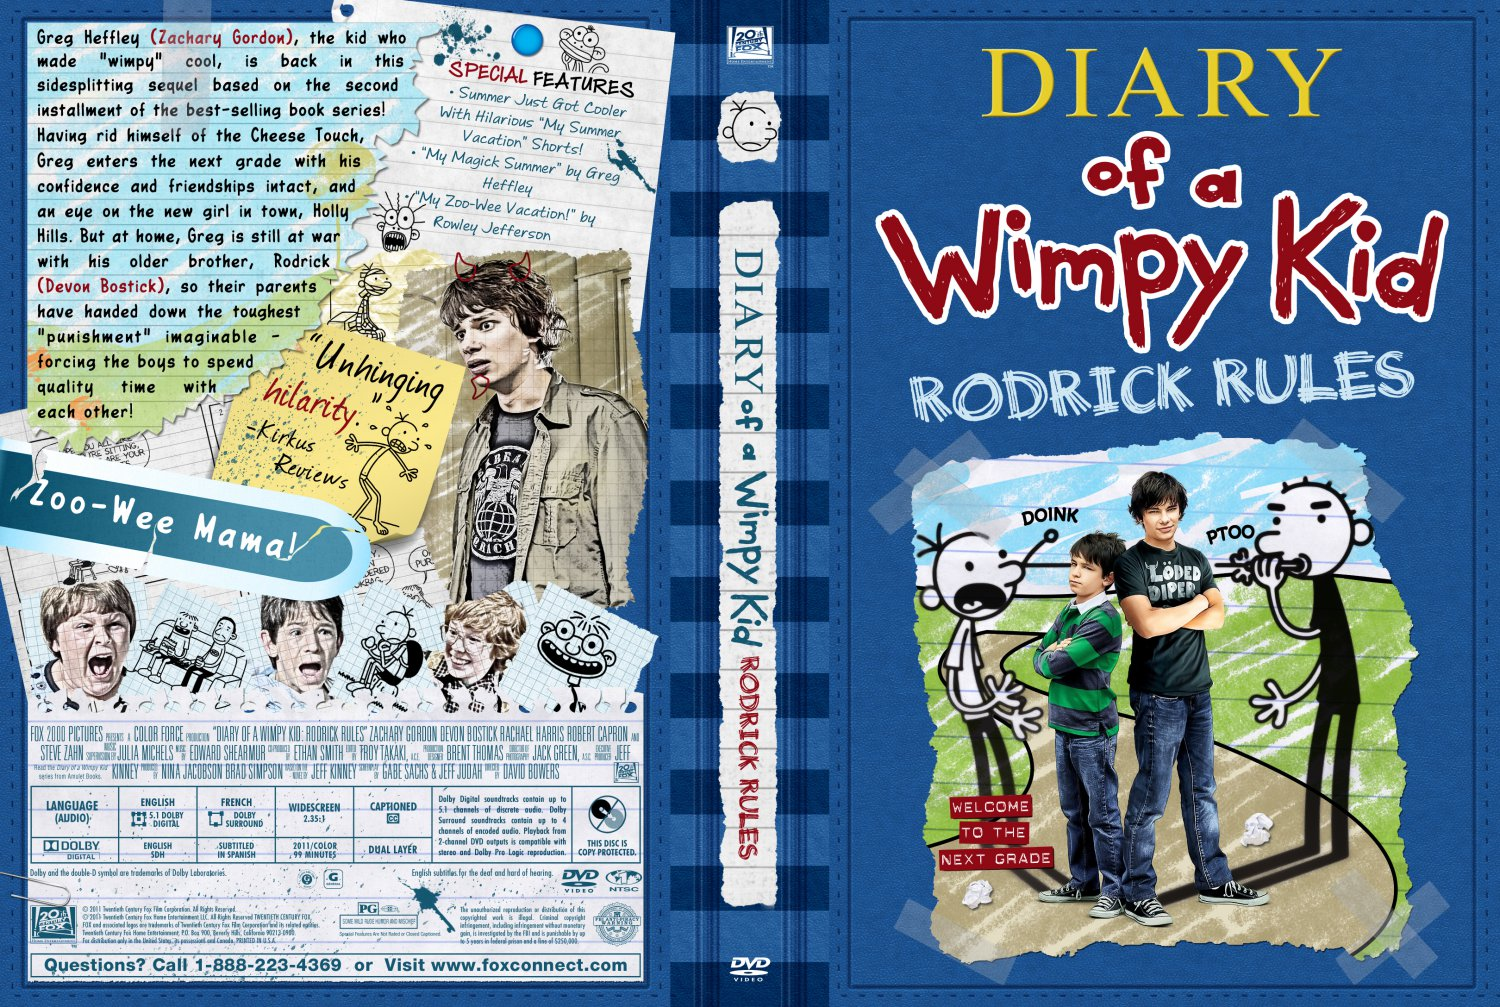 Diary of a Wimpy Kid Rodrick Rules MovieDiary Of A Wimpy Kid Rodrick Rules Book Pictures